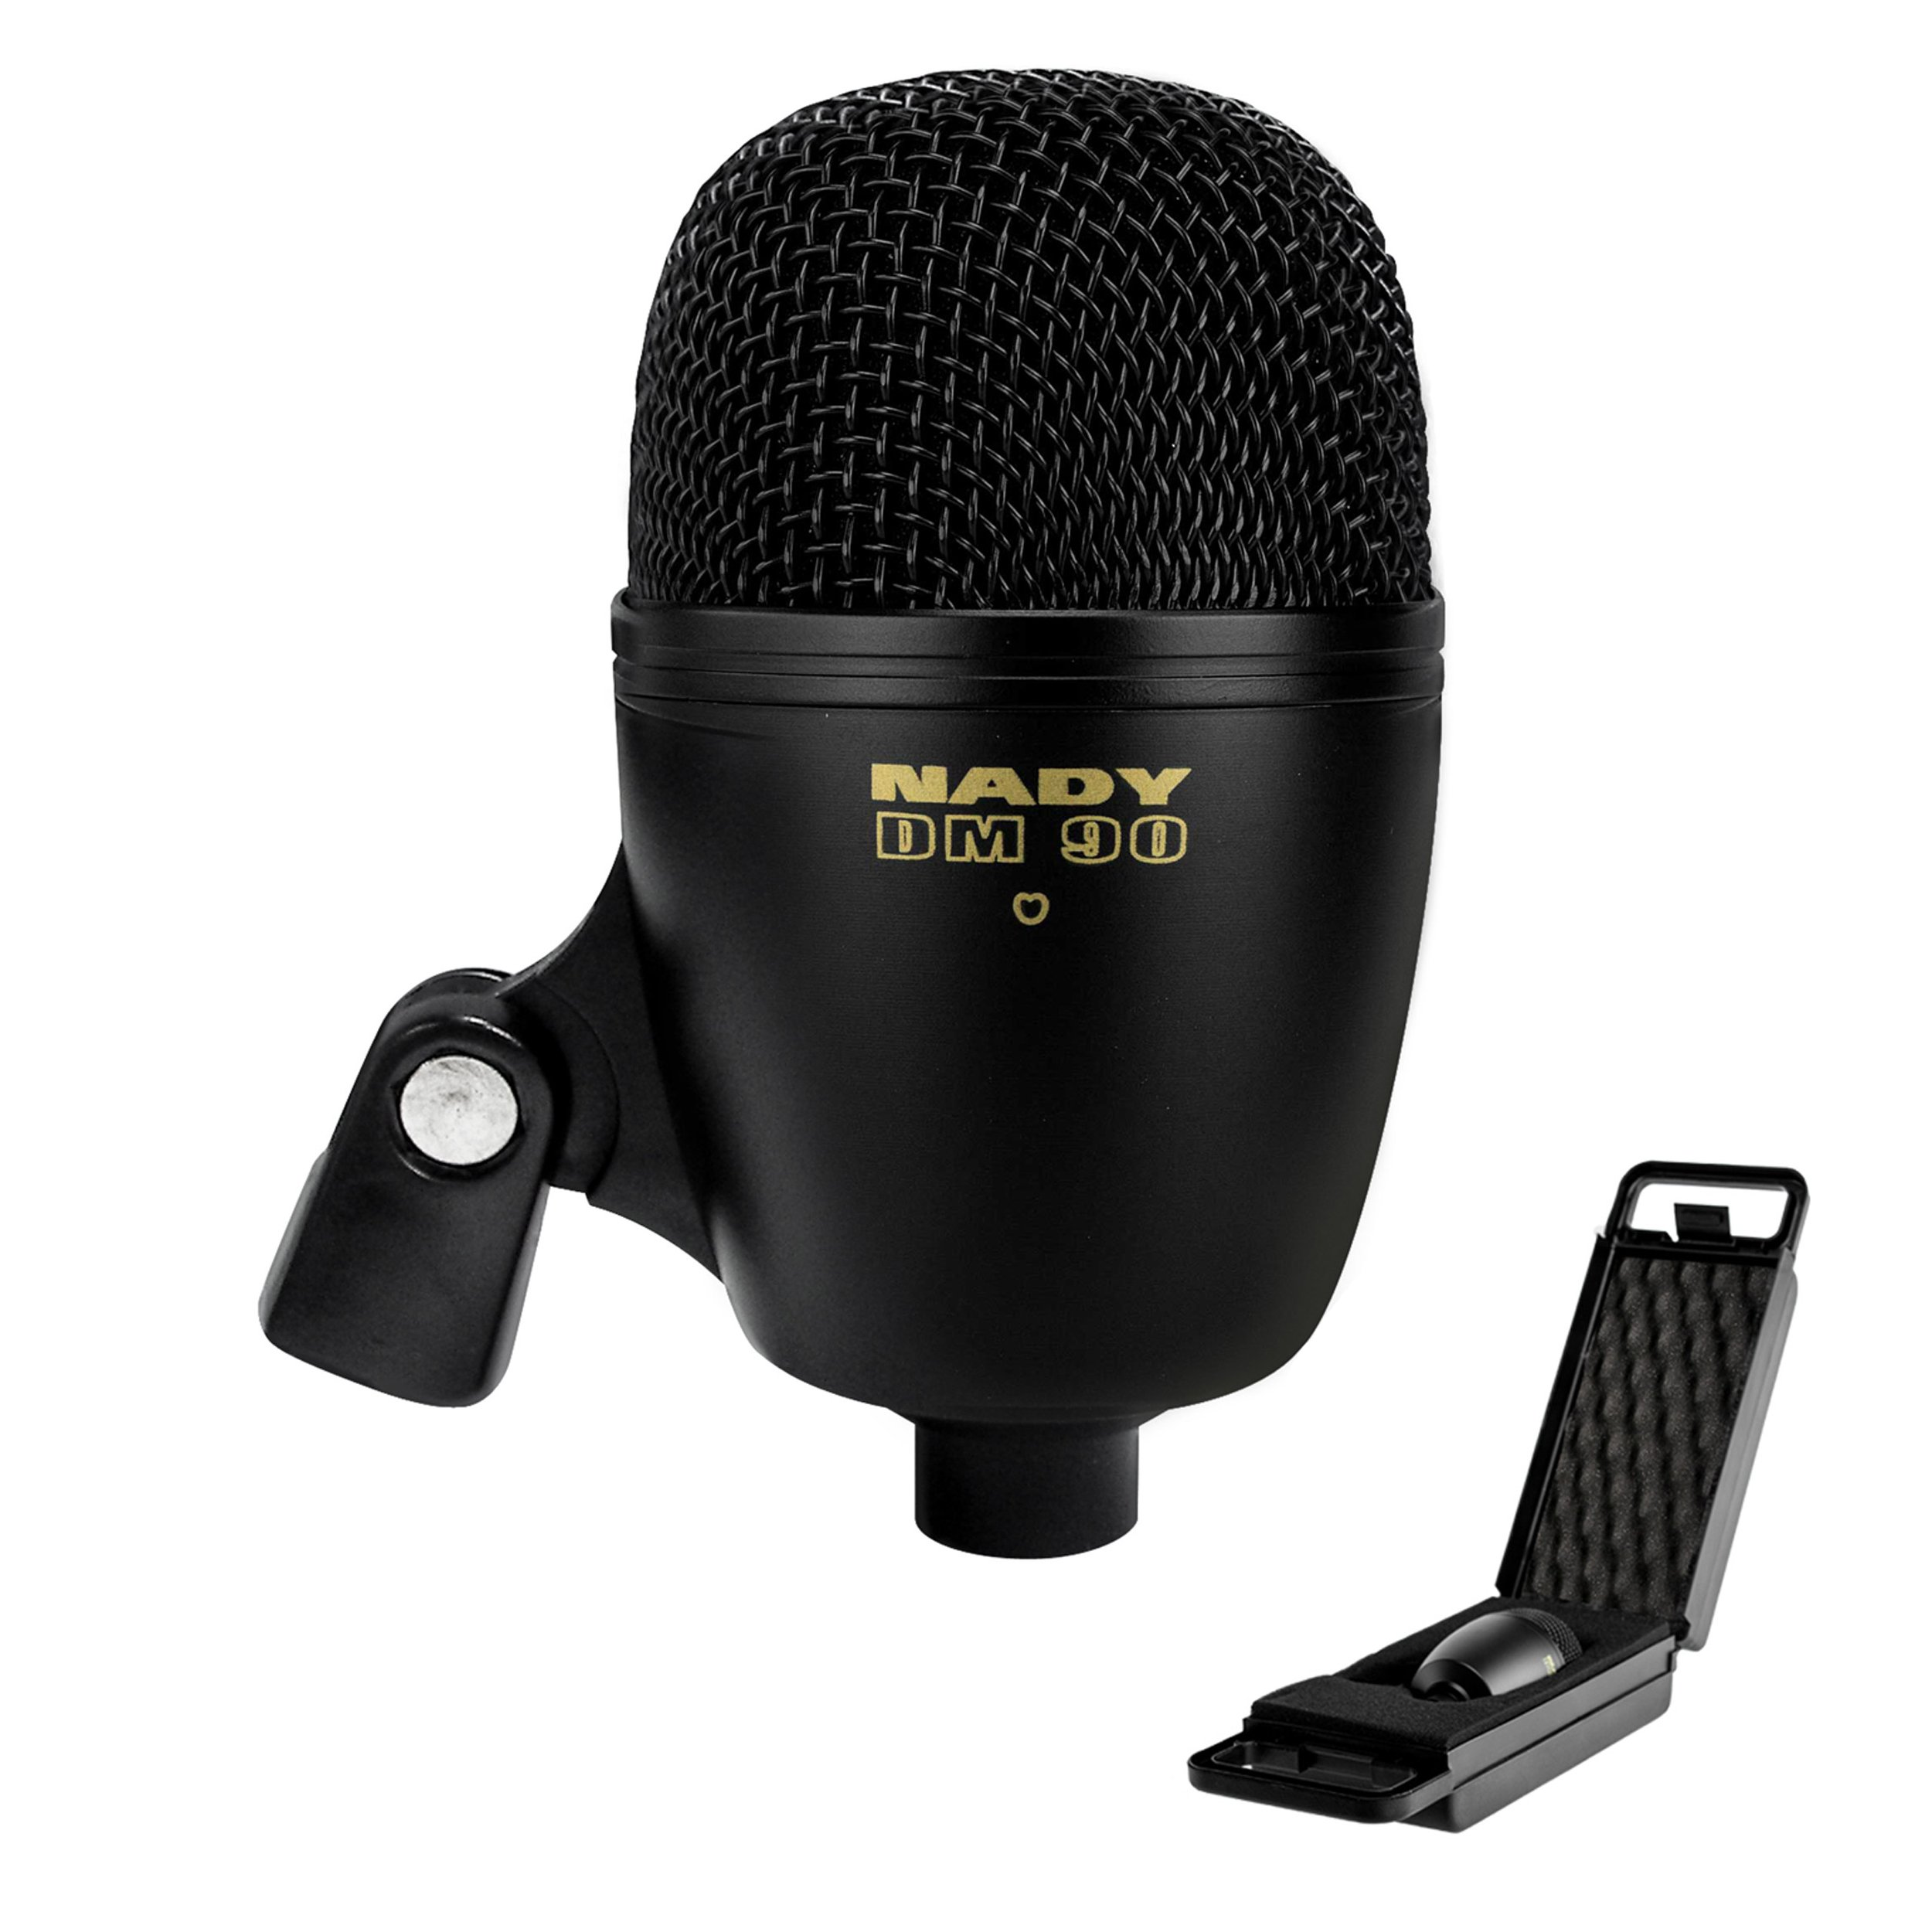 The DM-90 Dynamic Kick Drum Microphone - Extended low frequency, supercardioid pattern and dynamic large diaphragm by Nady